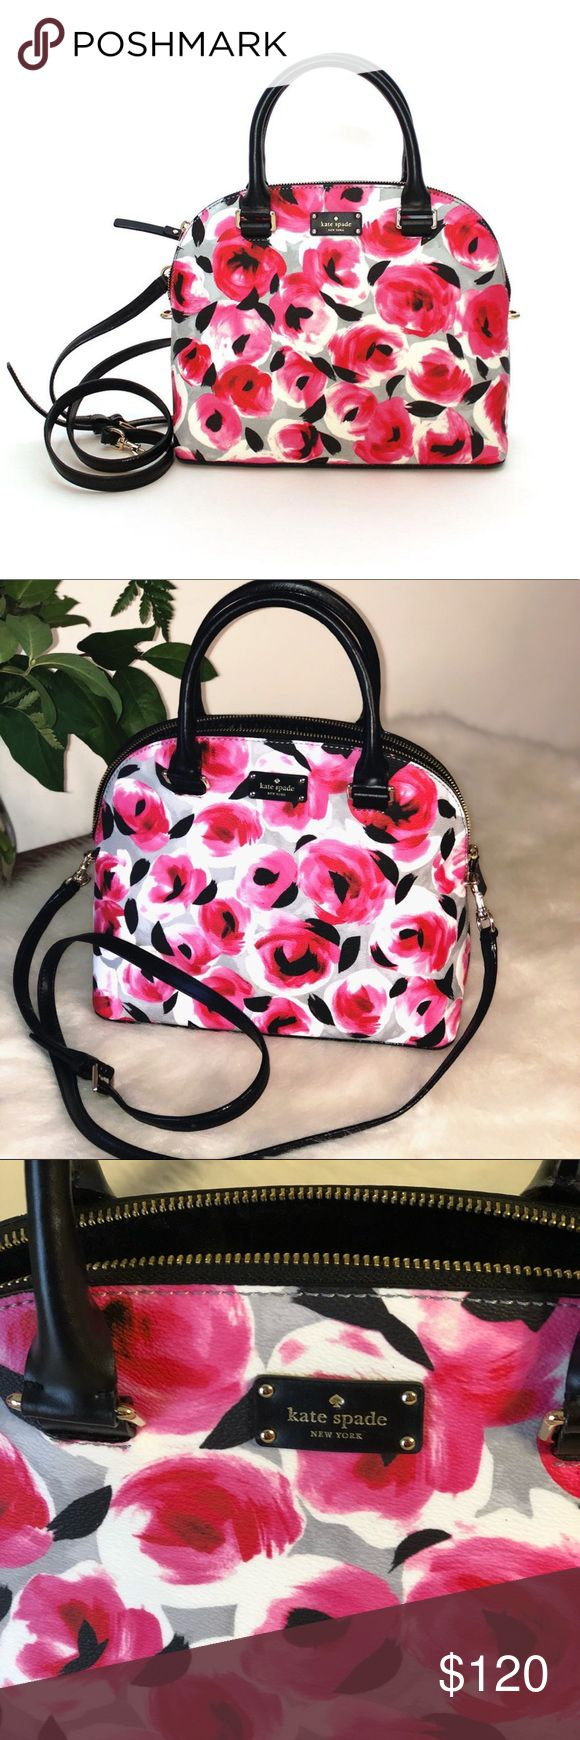 "NEW Grove Street Carli Rose bed shoulder Bag 100% authentic.  Rose bed printed canvas with black leather trim.  14-karat light gold plated hardware.  Zip top closure and fabric lining. Inside zip and slip pockets. Double handles drop 4"". Measures 11.5"" (L) x 9"" (H) x 4.75"" (W). Longer detachable and adjustable strap for shoulder and crossbody wear.  Brand new wot. Comes from a pet and smoke free home. kate spade Bags Shoulder Bags"